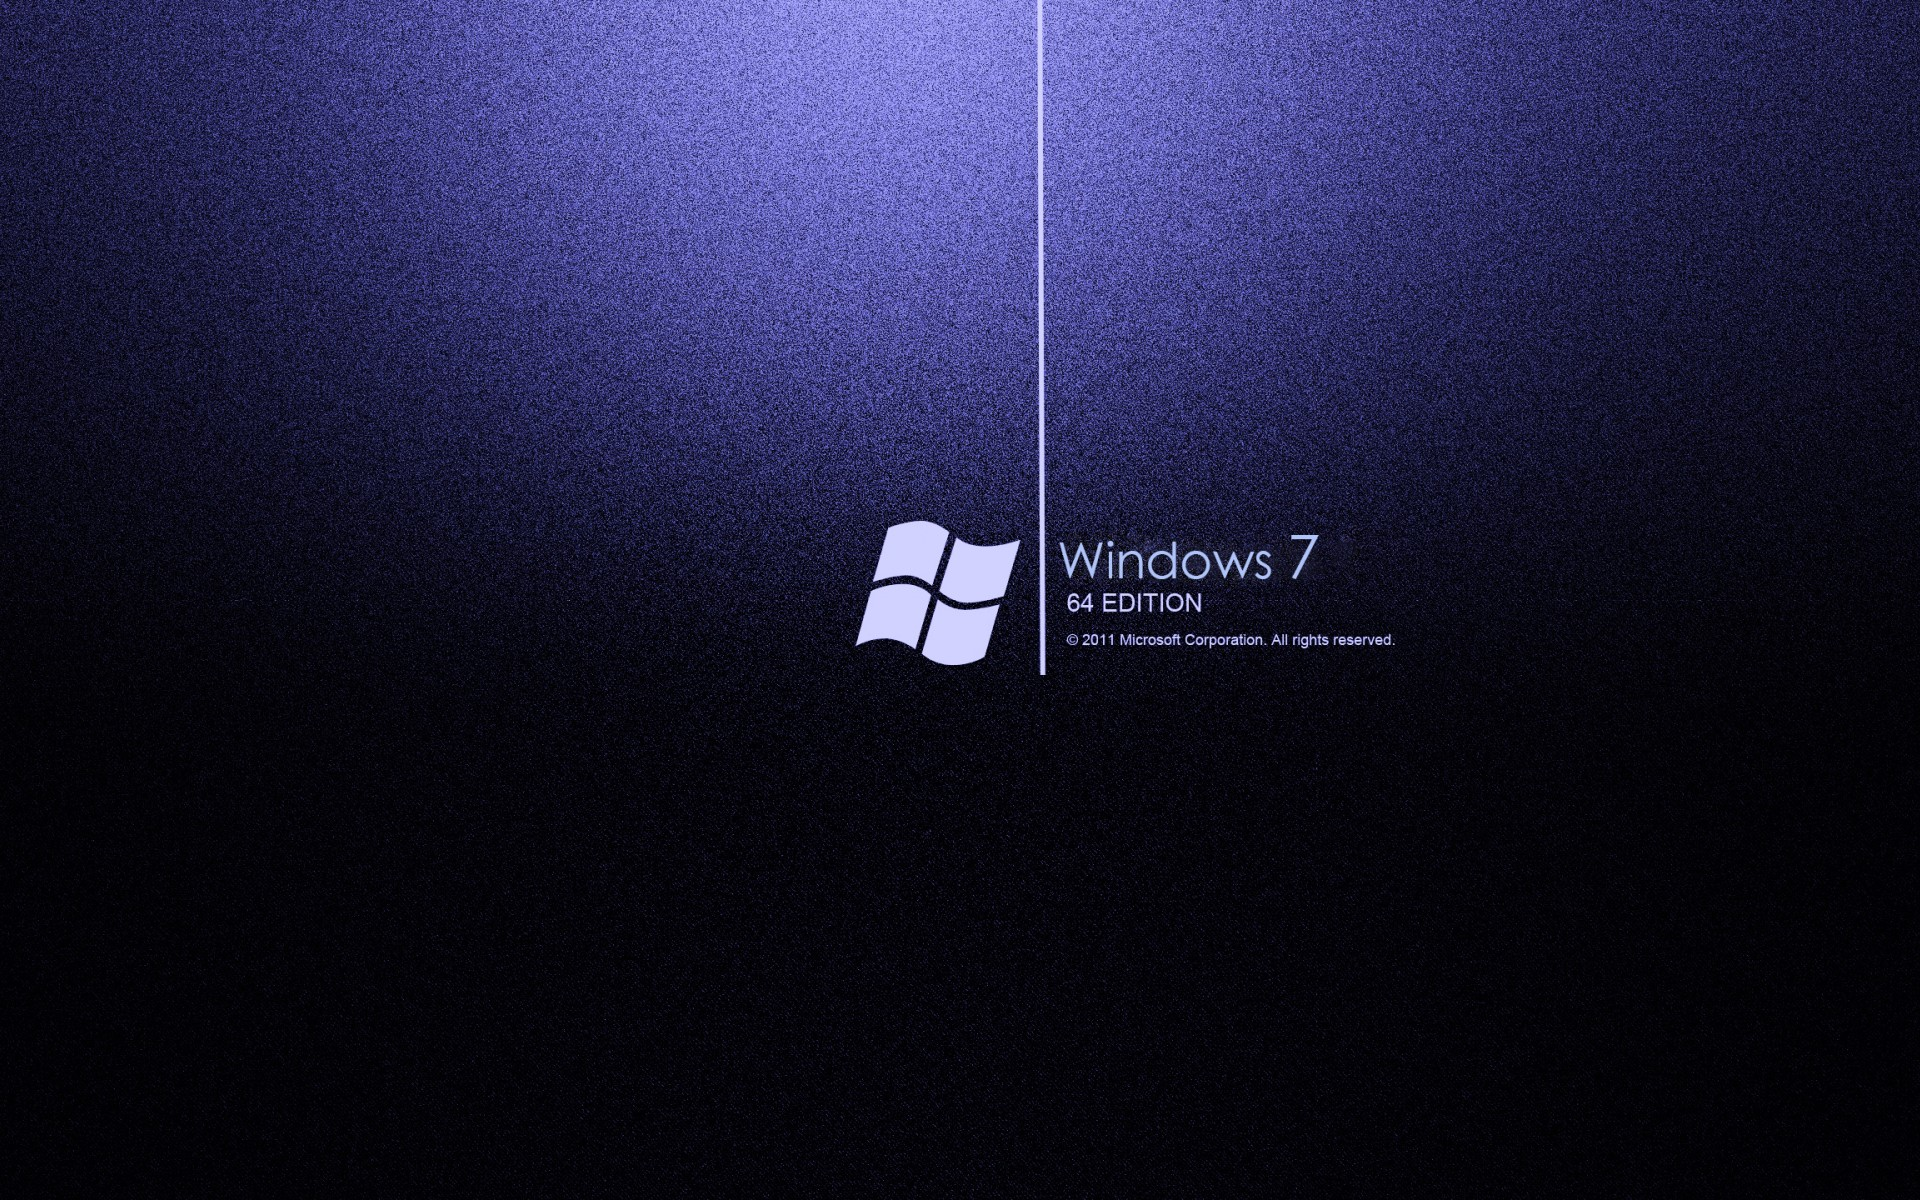 Desktop Wallpaper 217 – Windows 7